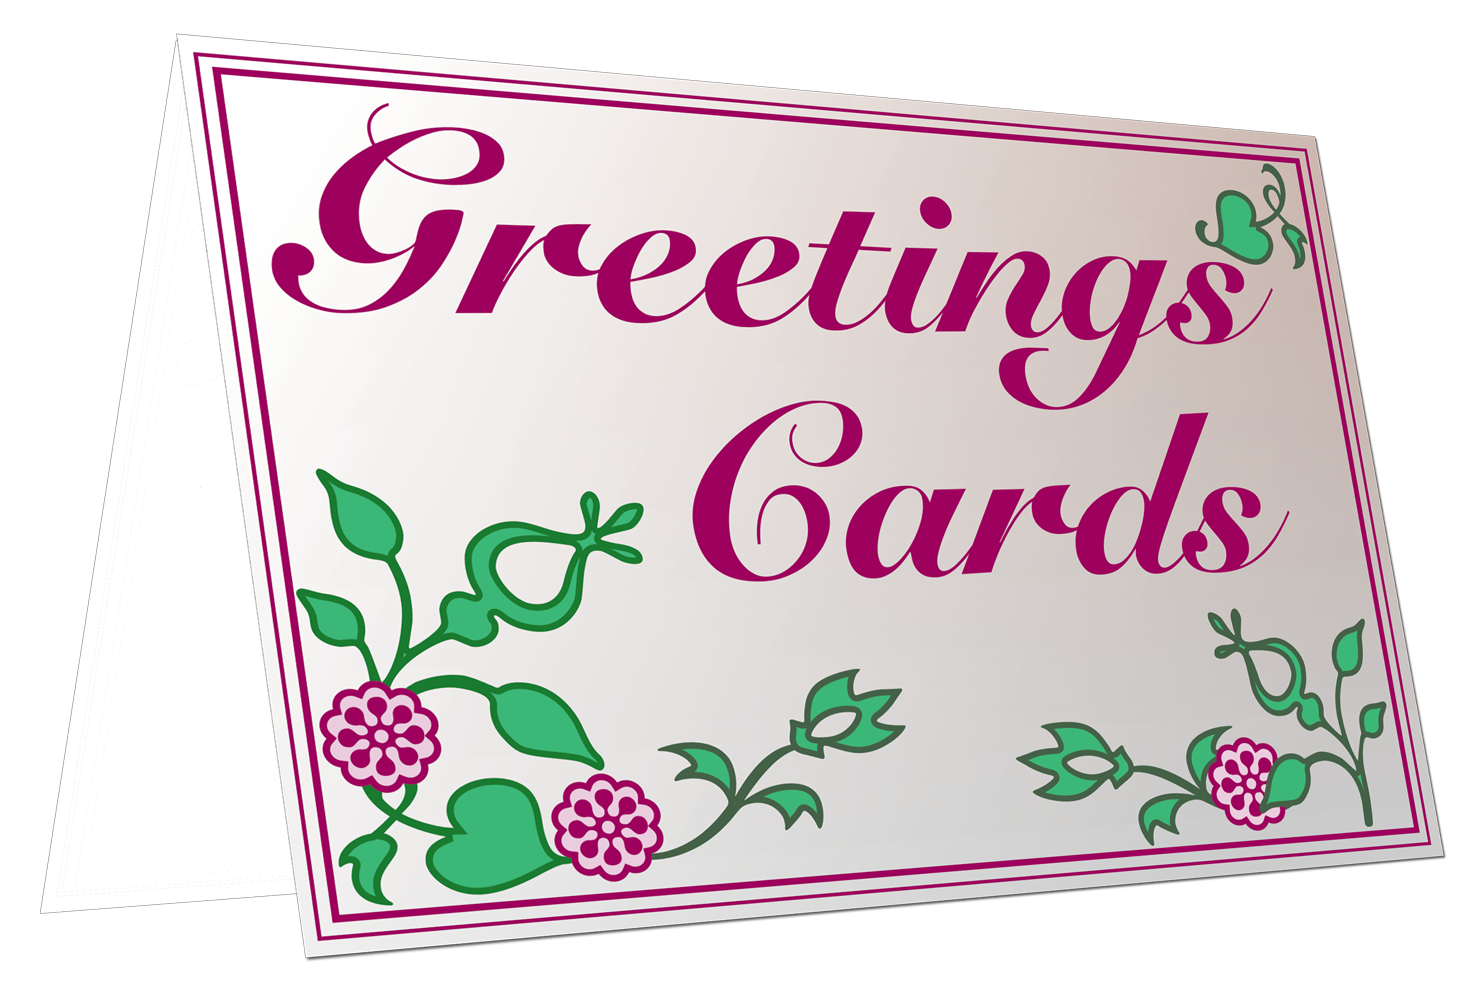 Personalised Greetings Cards in Bedfordshire UK